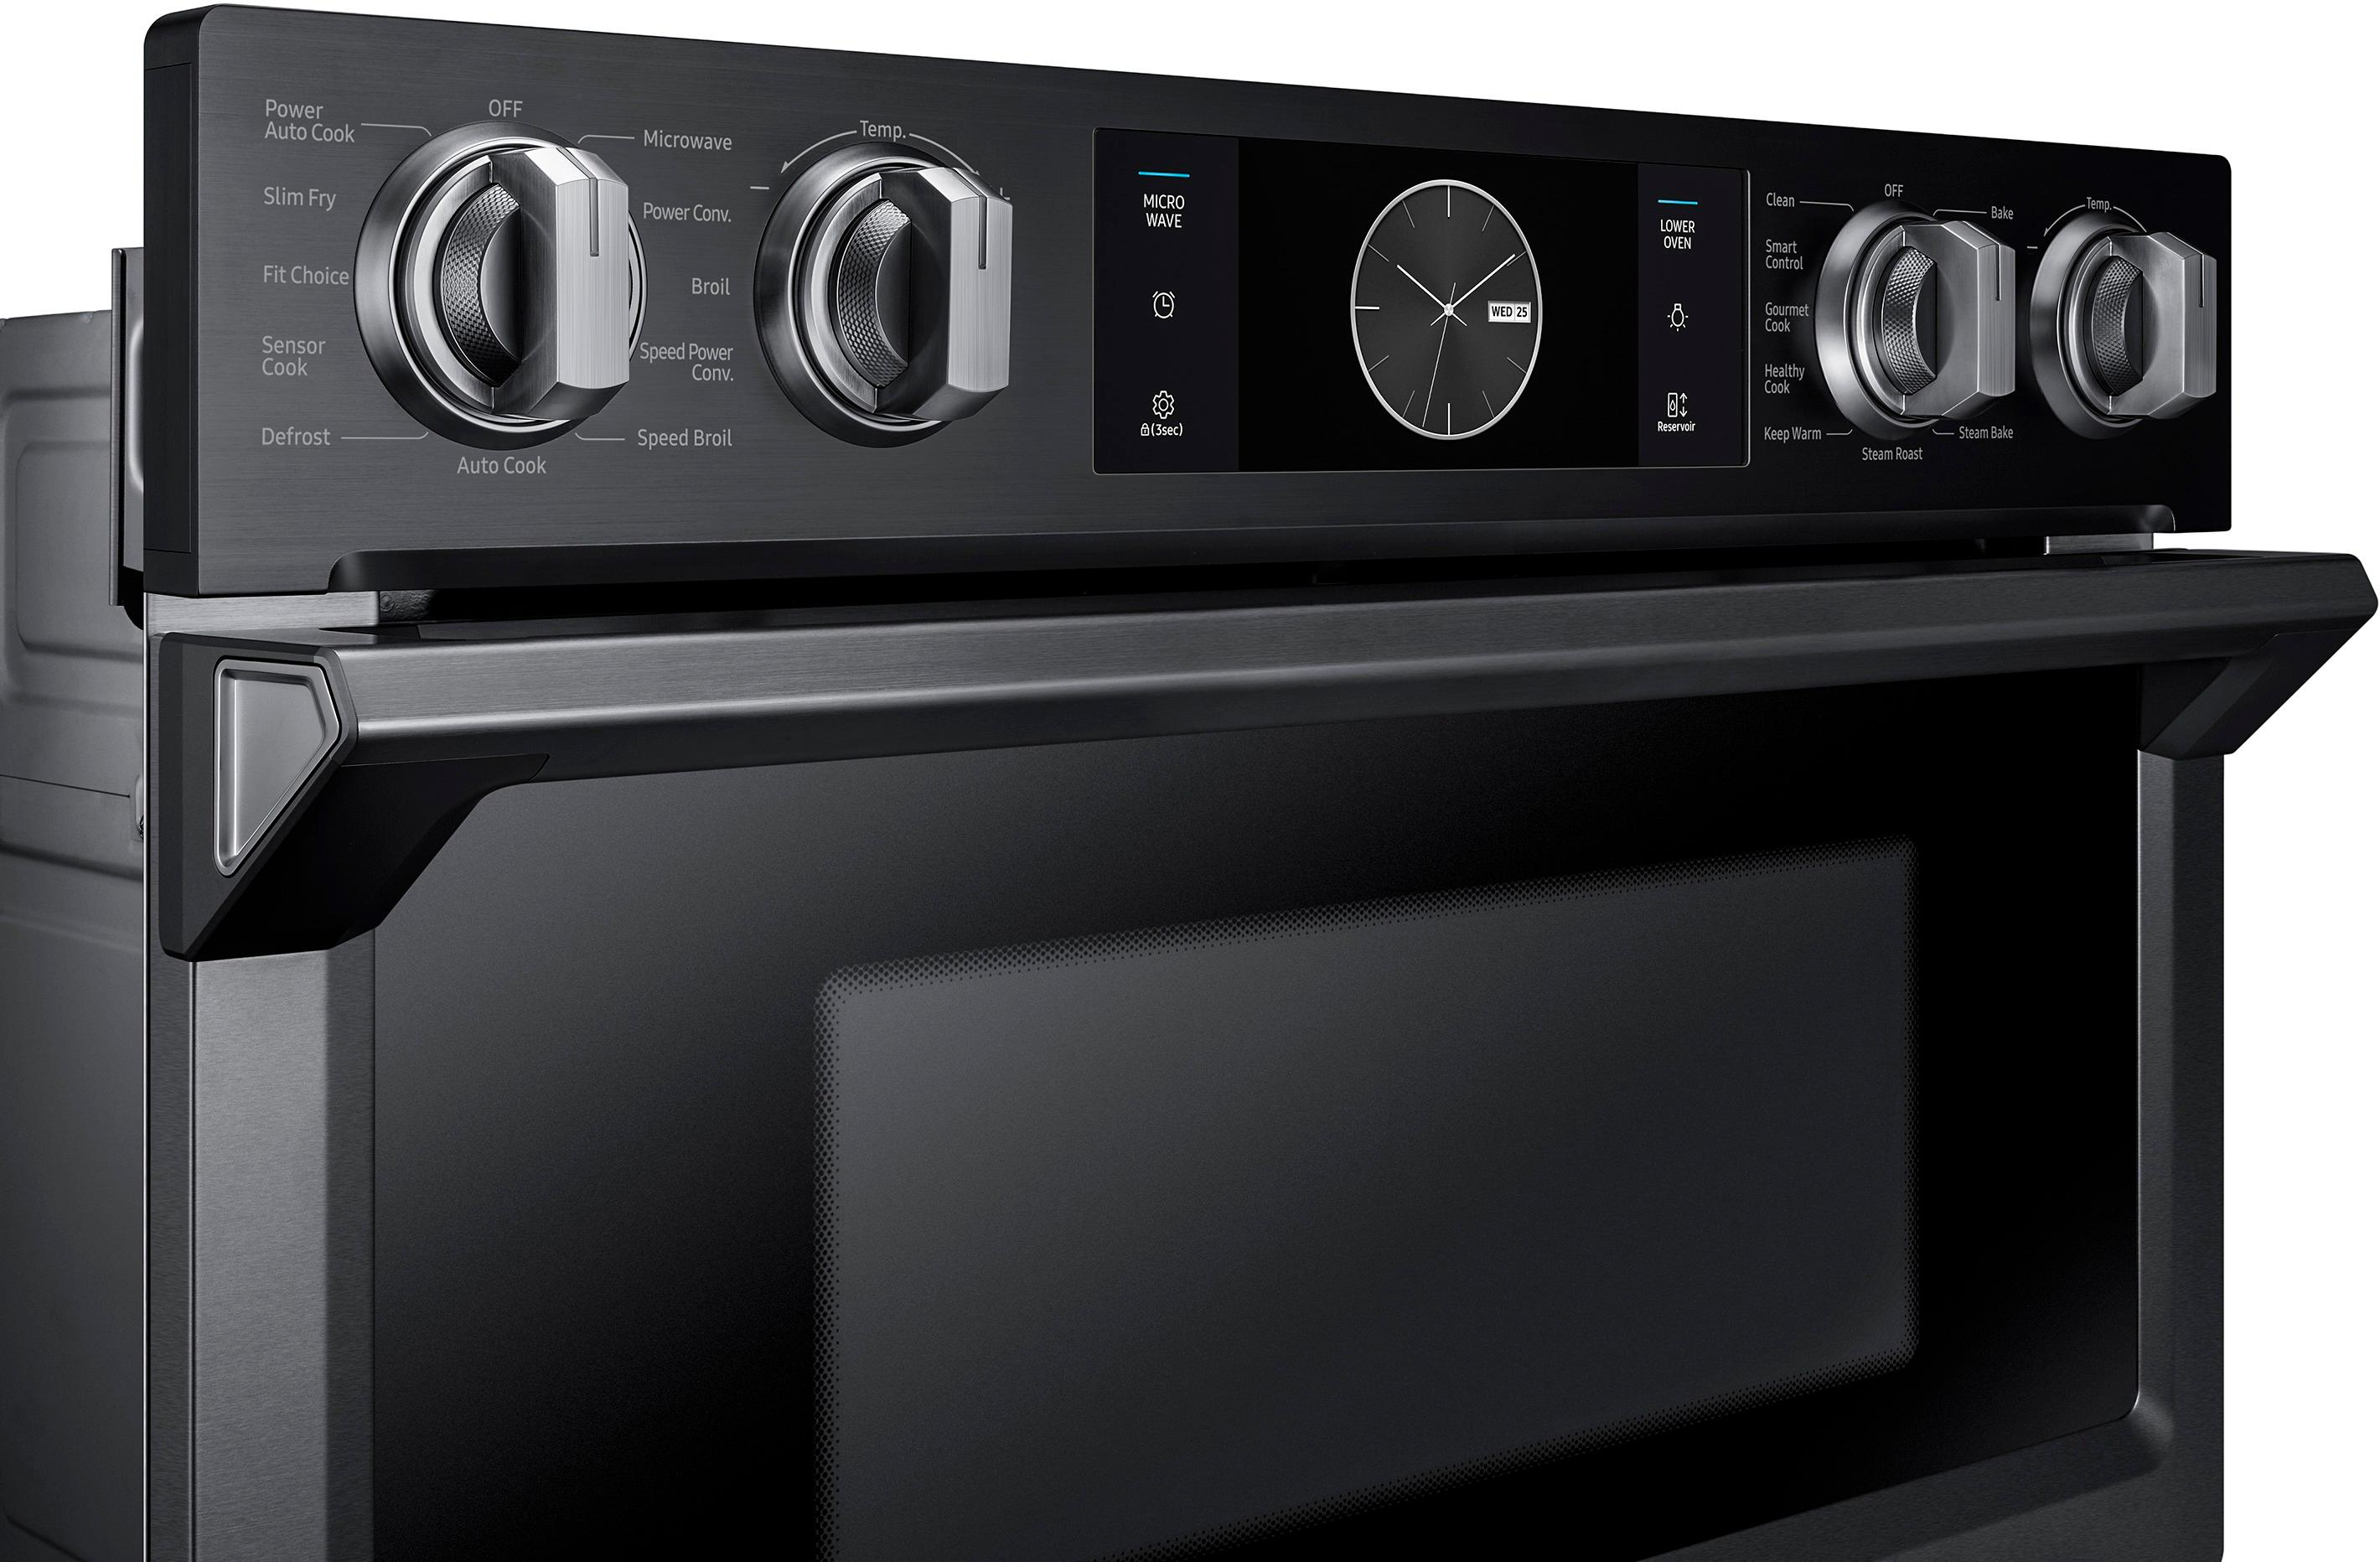 Get your home holiday ready with a stylish new kitchen and these awesome appliances with Samsung Prep for the Holidays Best Buy event!